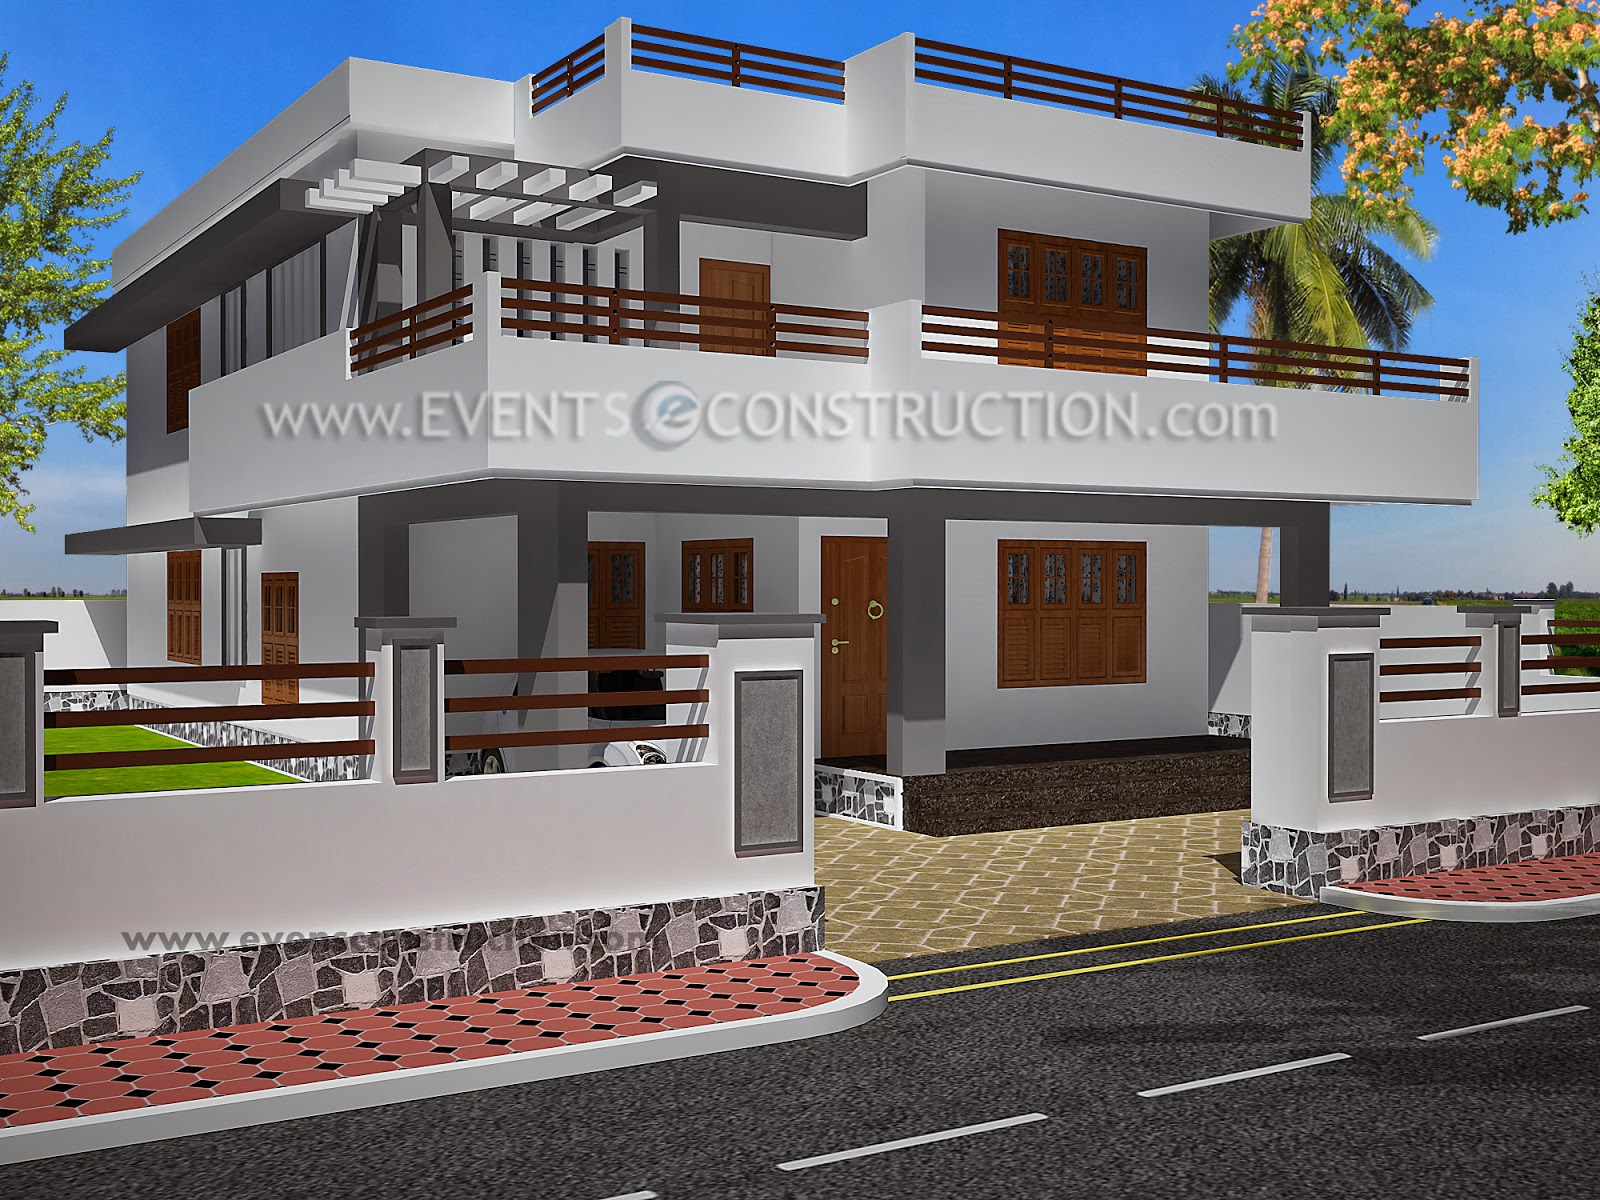 House Compound Designs Pictures: Designs Of Compounds Of Indian Houses